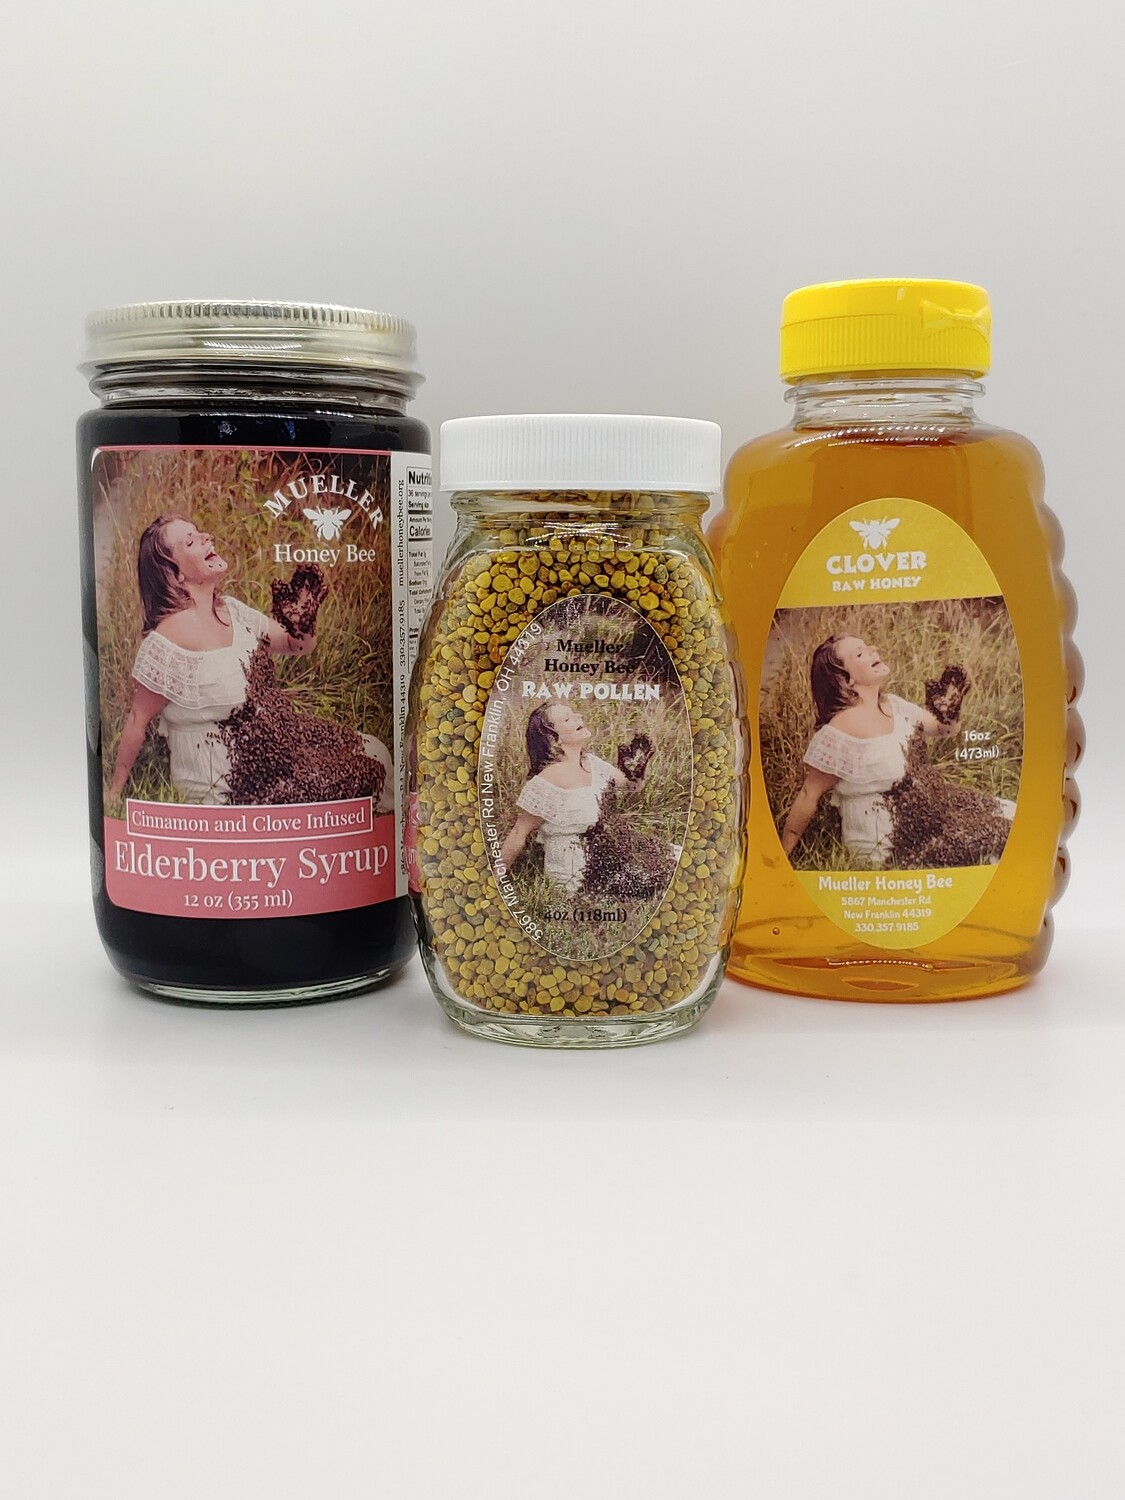 Variety Pack - 12 oz Elderberry Syrup, 6 oz Pollen, 16 oz Honey